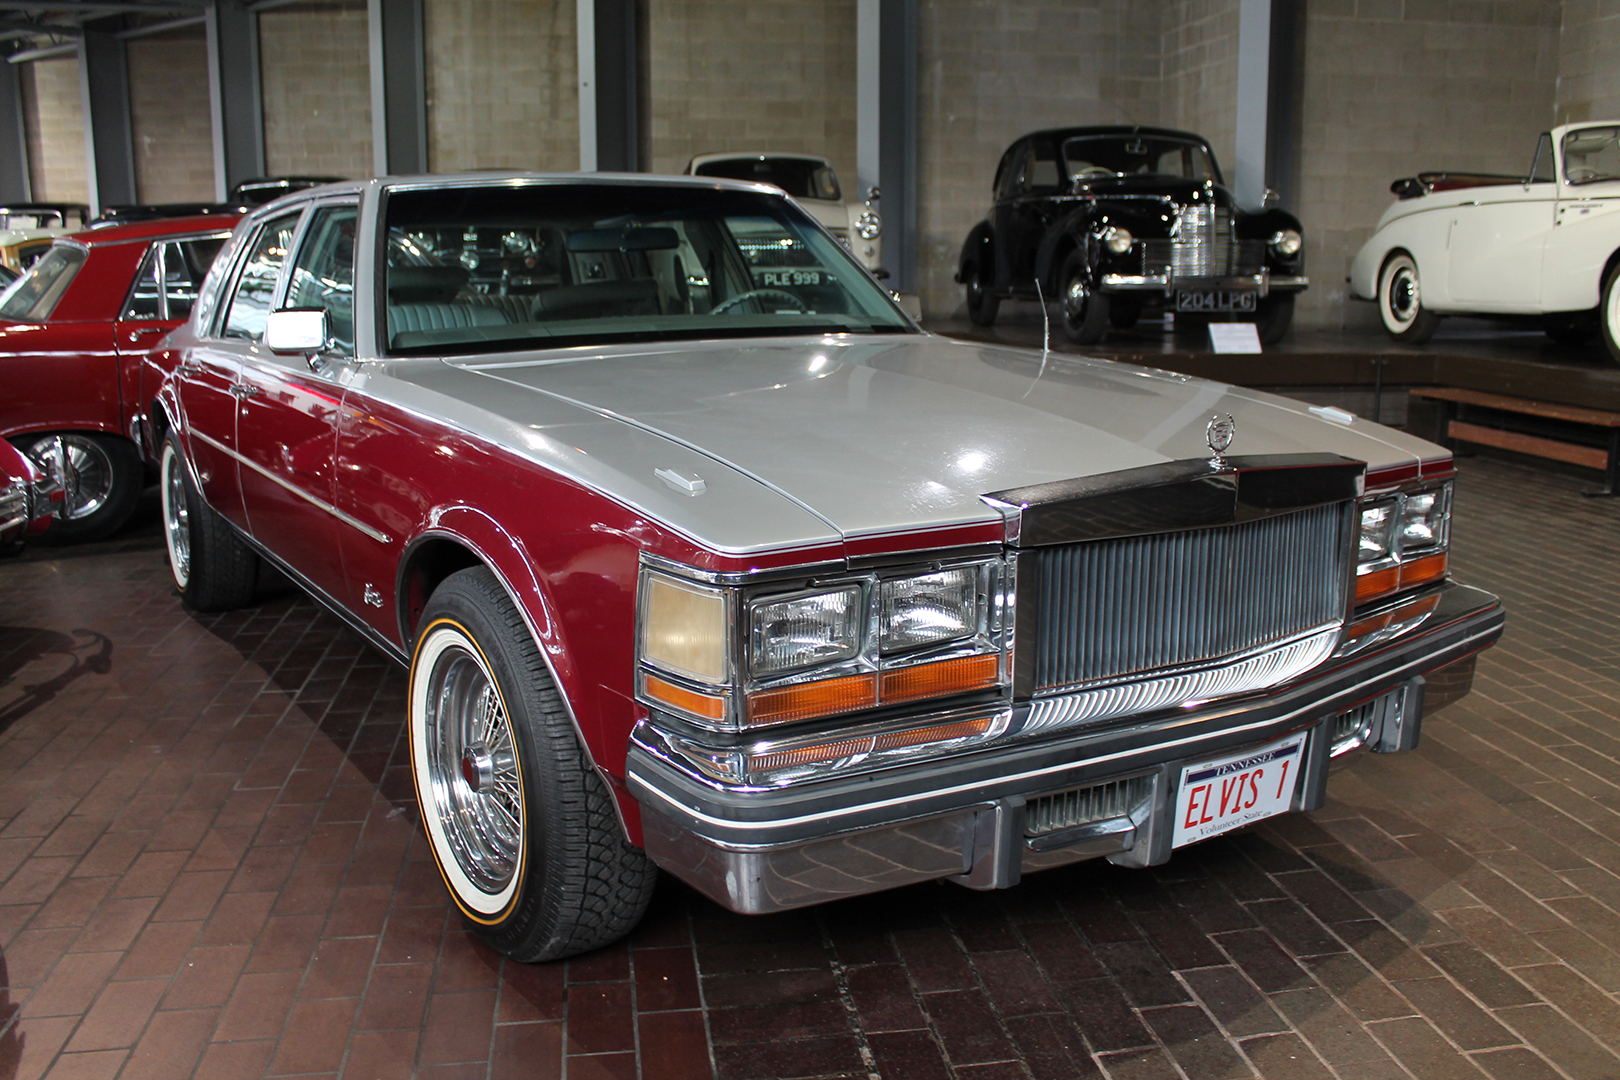 Elvis Presley Once Owned This 1976 Cadillac Seville Autoevolution